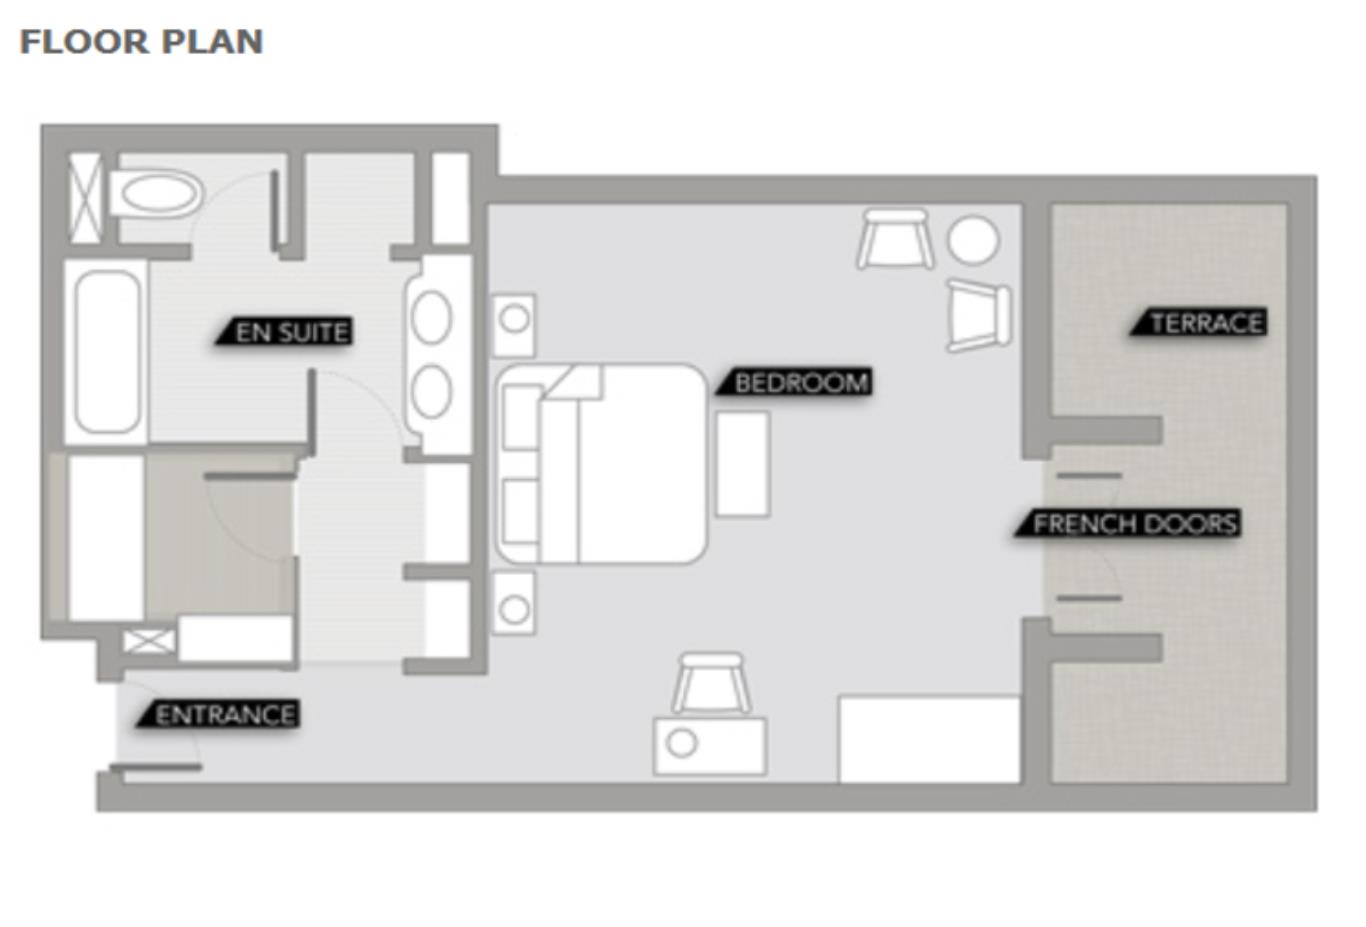 Rooftop Luxury Floorplan